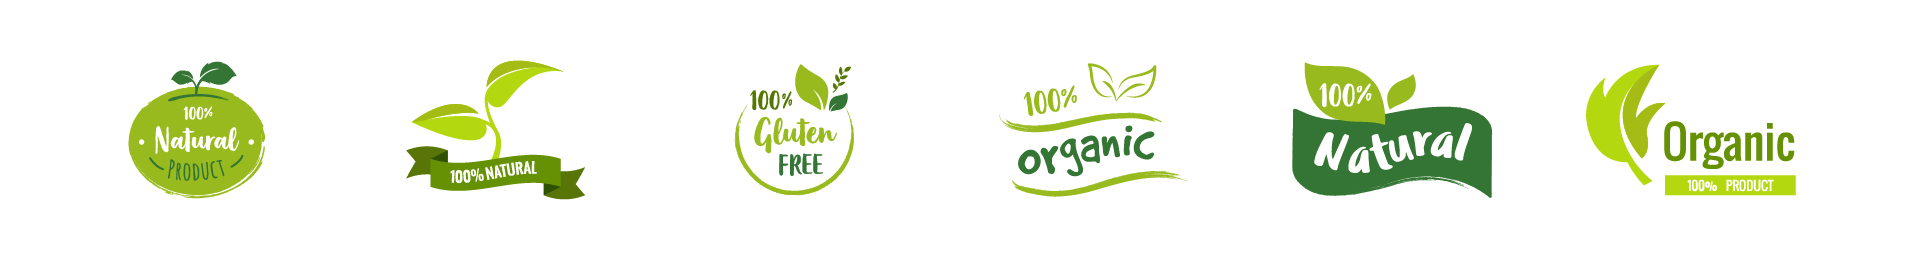 Myrooots Organic and Natural Online Store